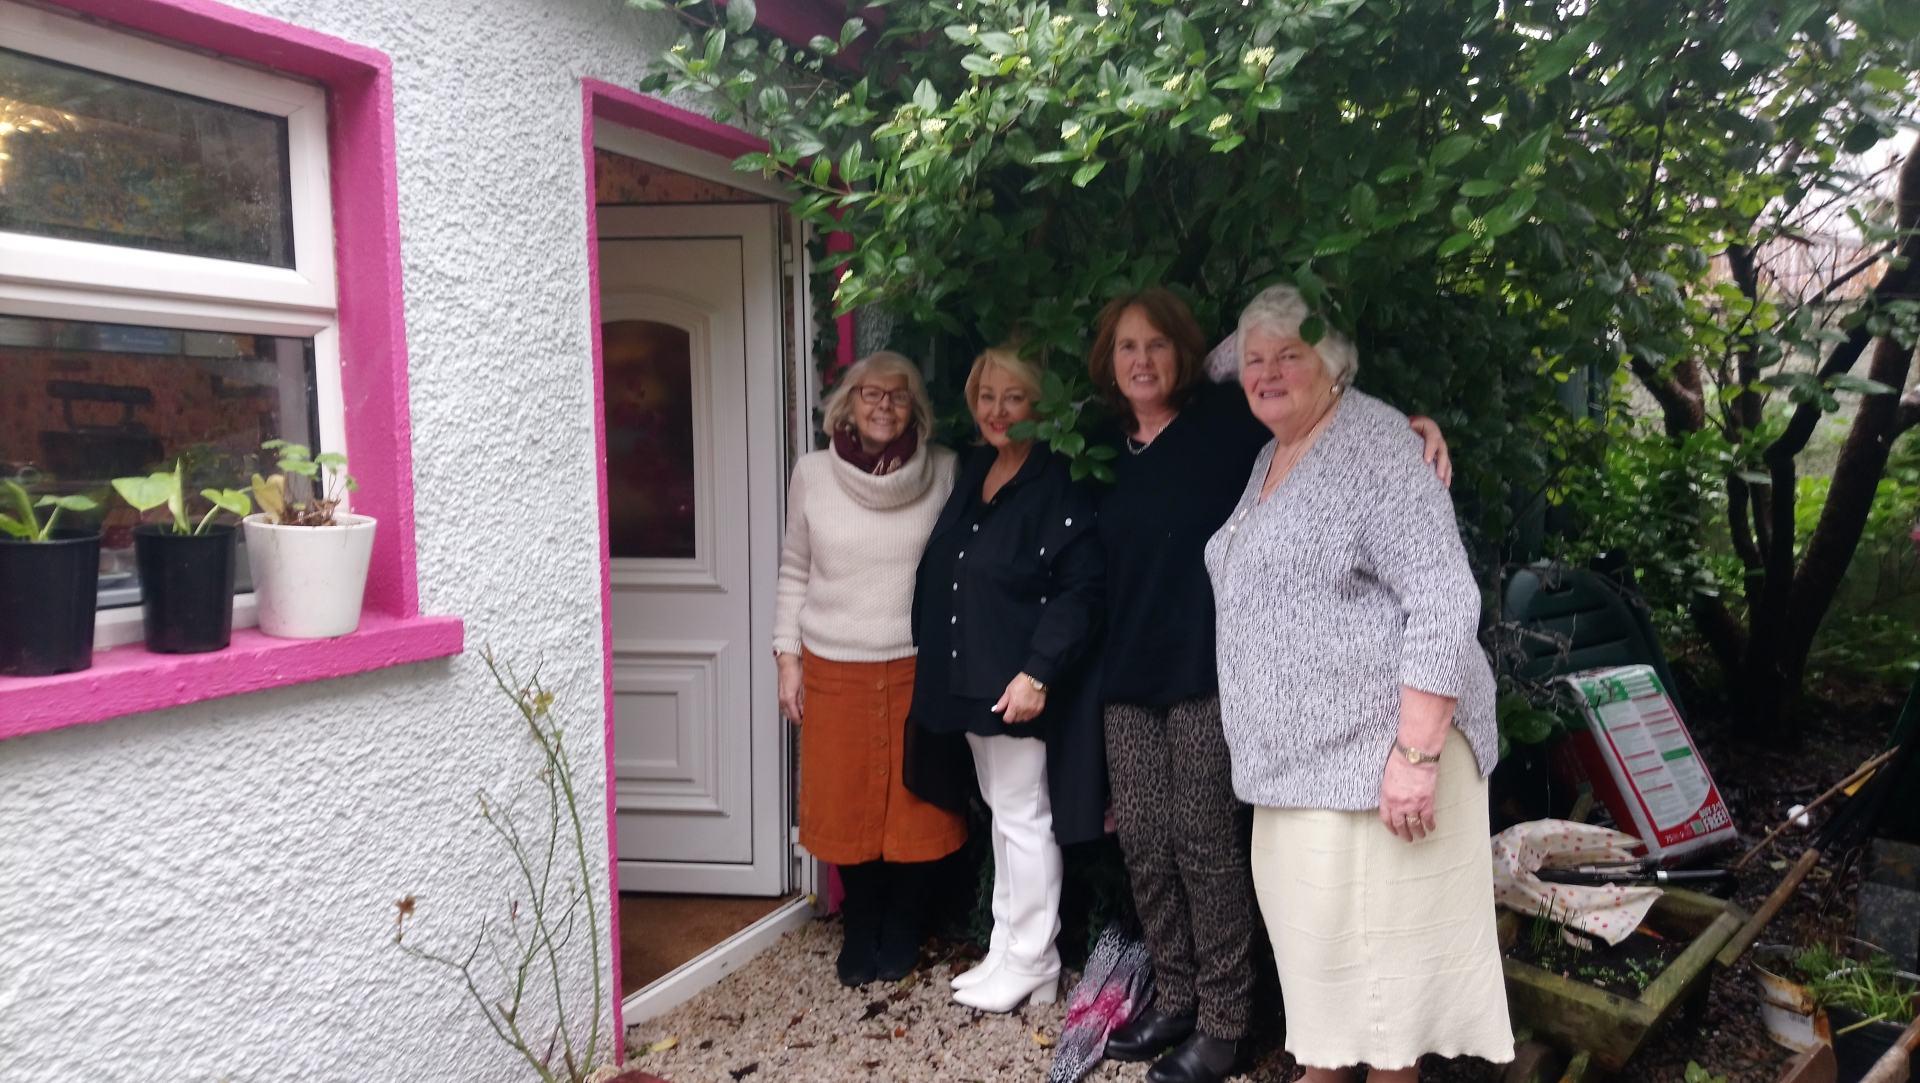 Donegal Women's Shed-ers